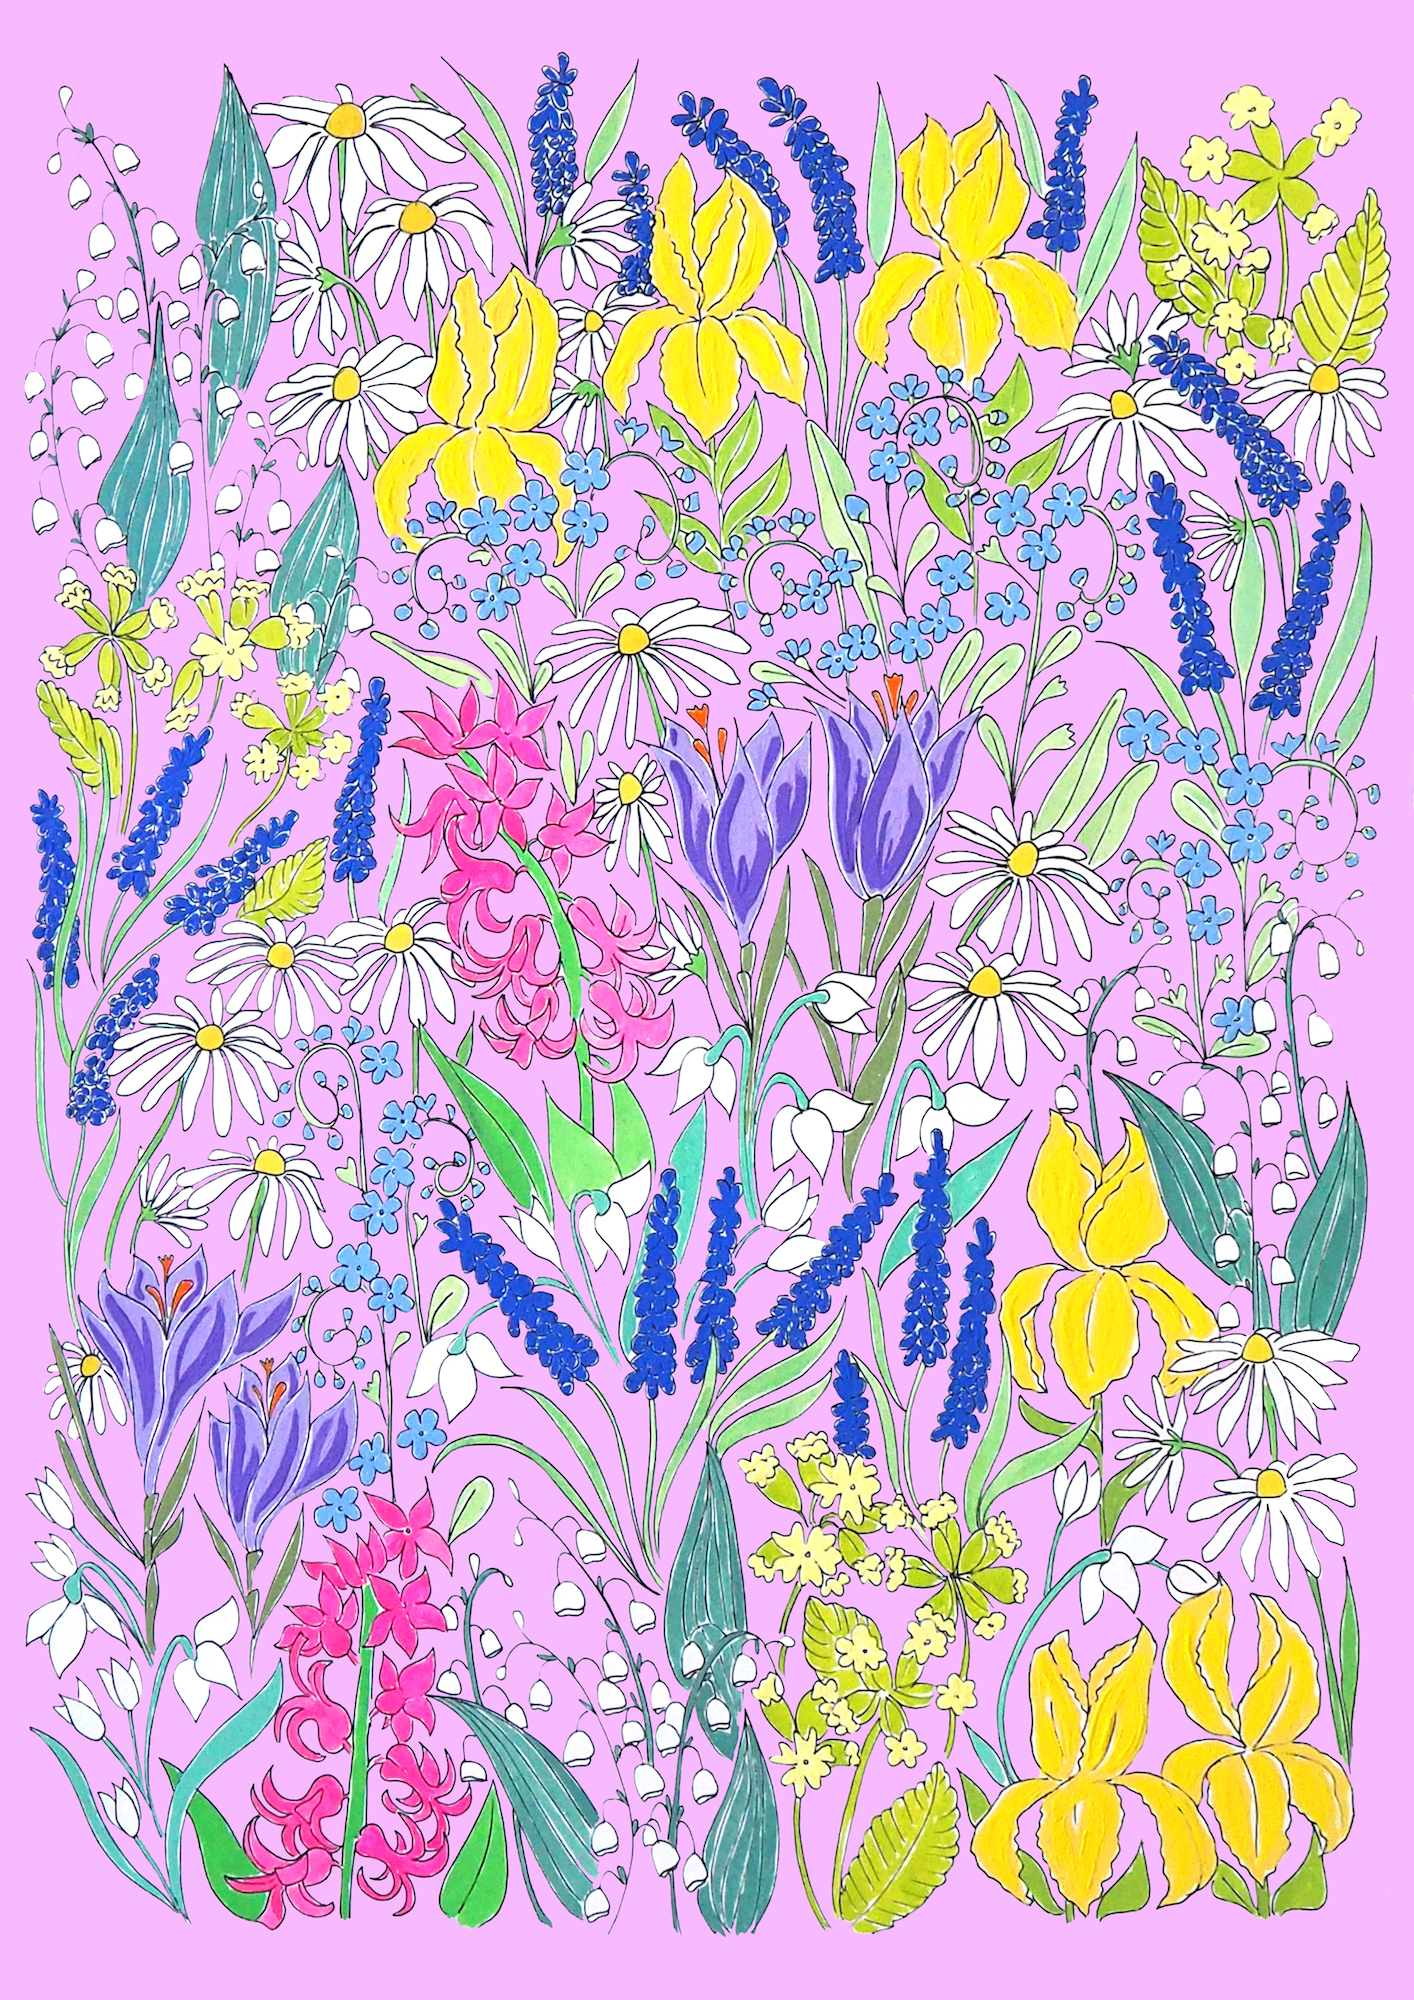 Spring flowers background pink.jpg